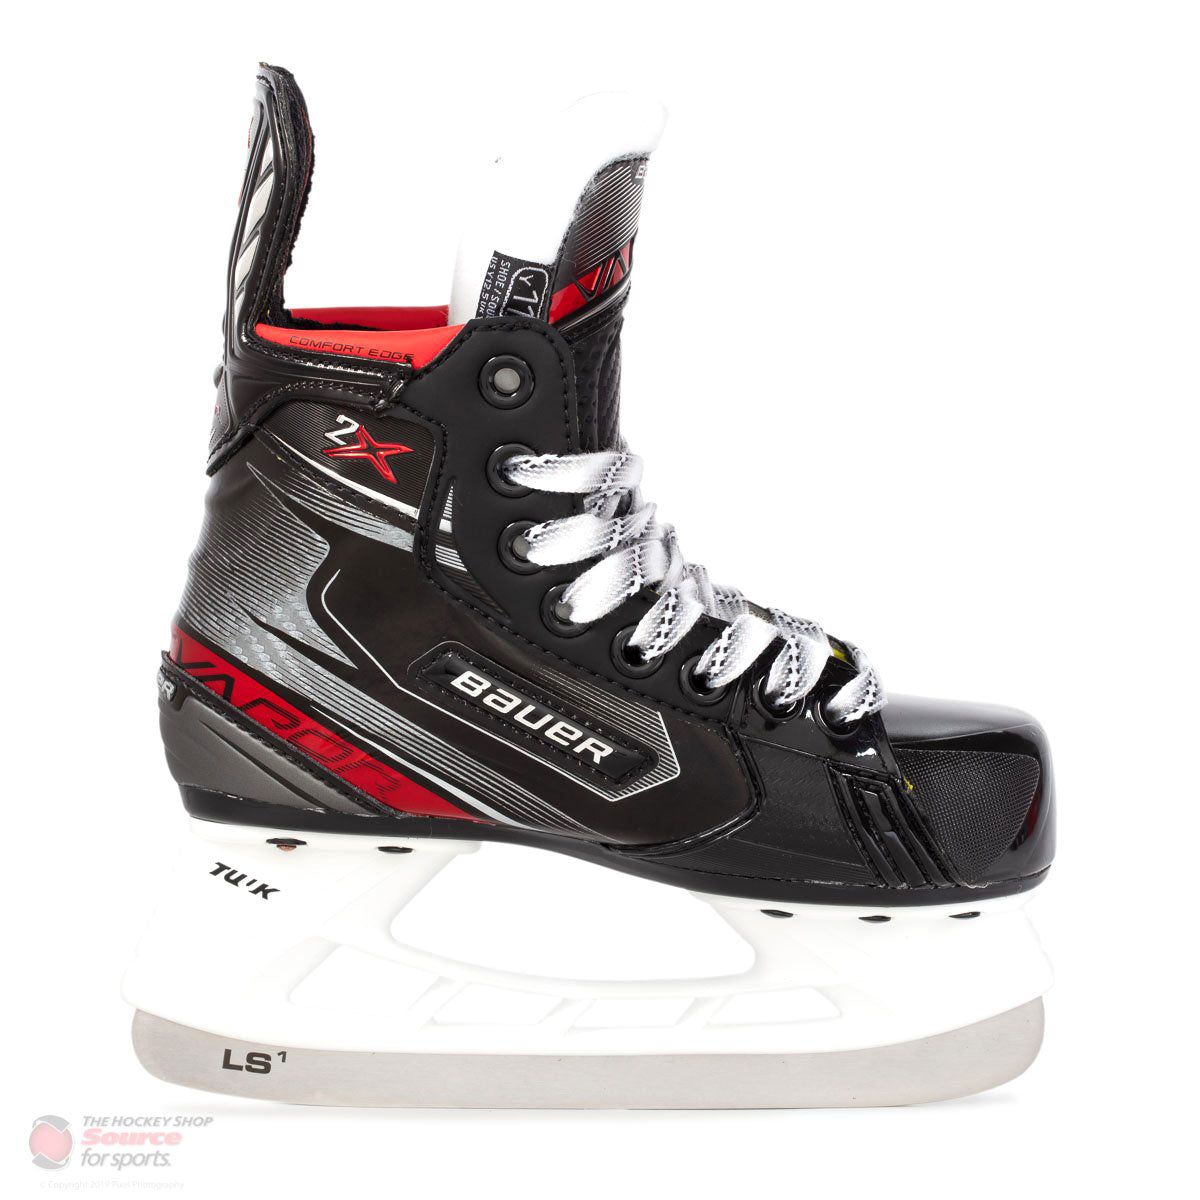 Bauer Vapor 2X Youth Hockey Skates